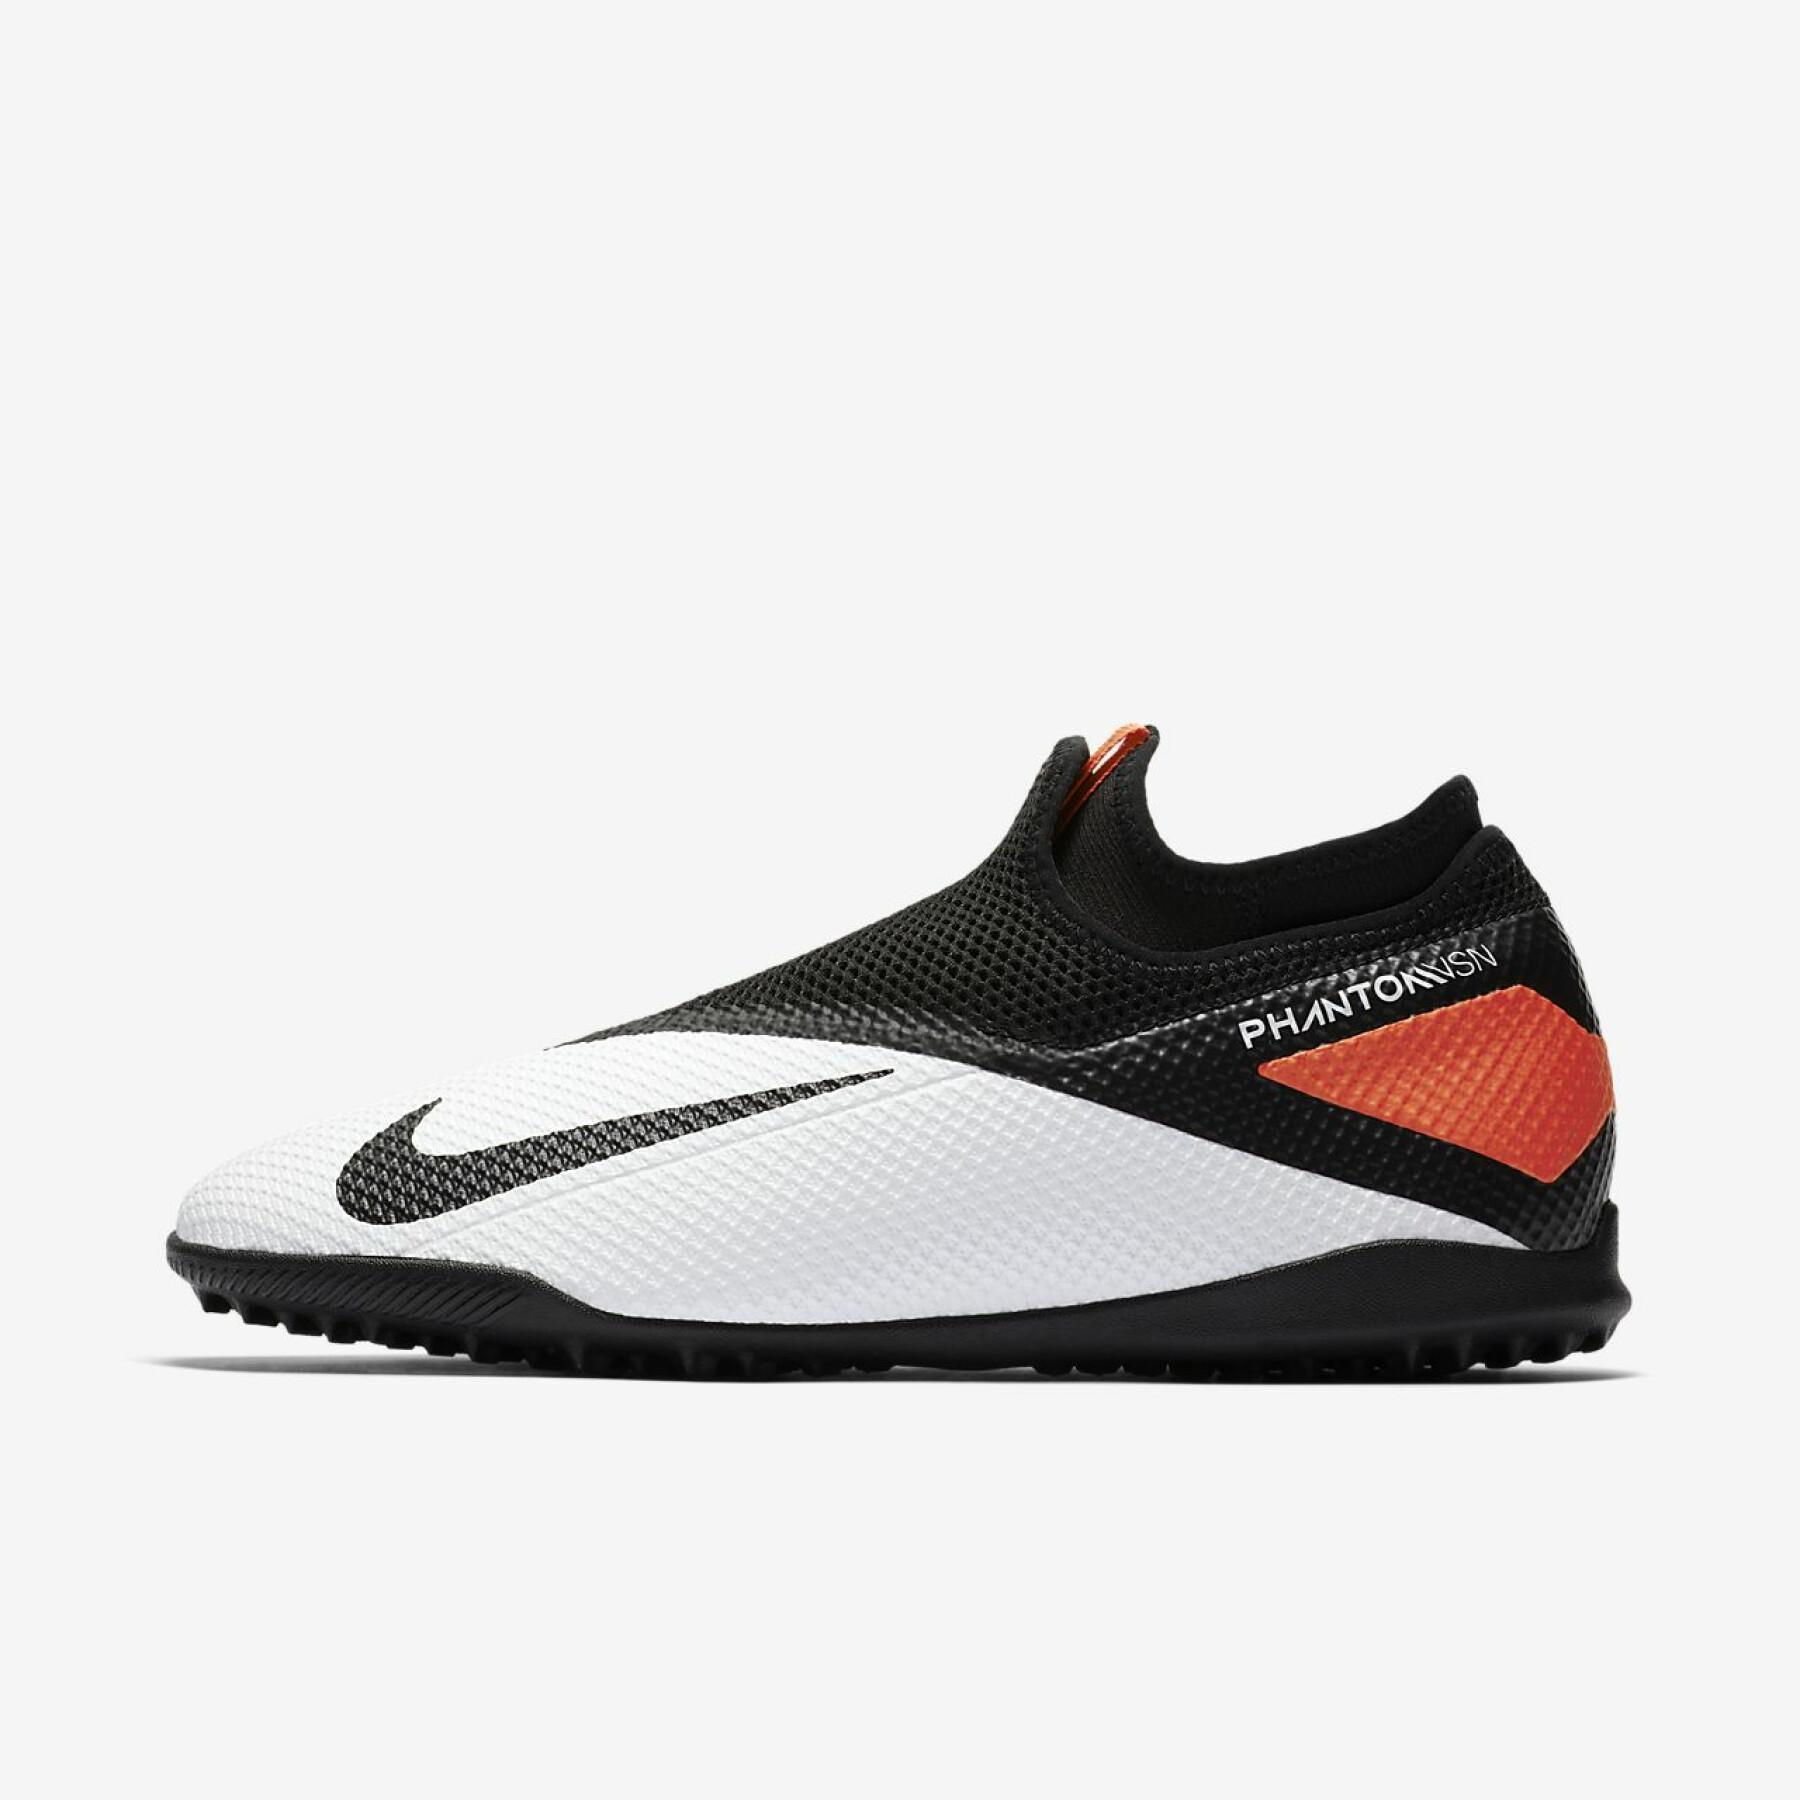 Chaussures Nike Phantom Vision 2 Academy DFit TF